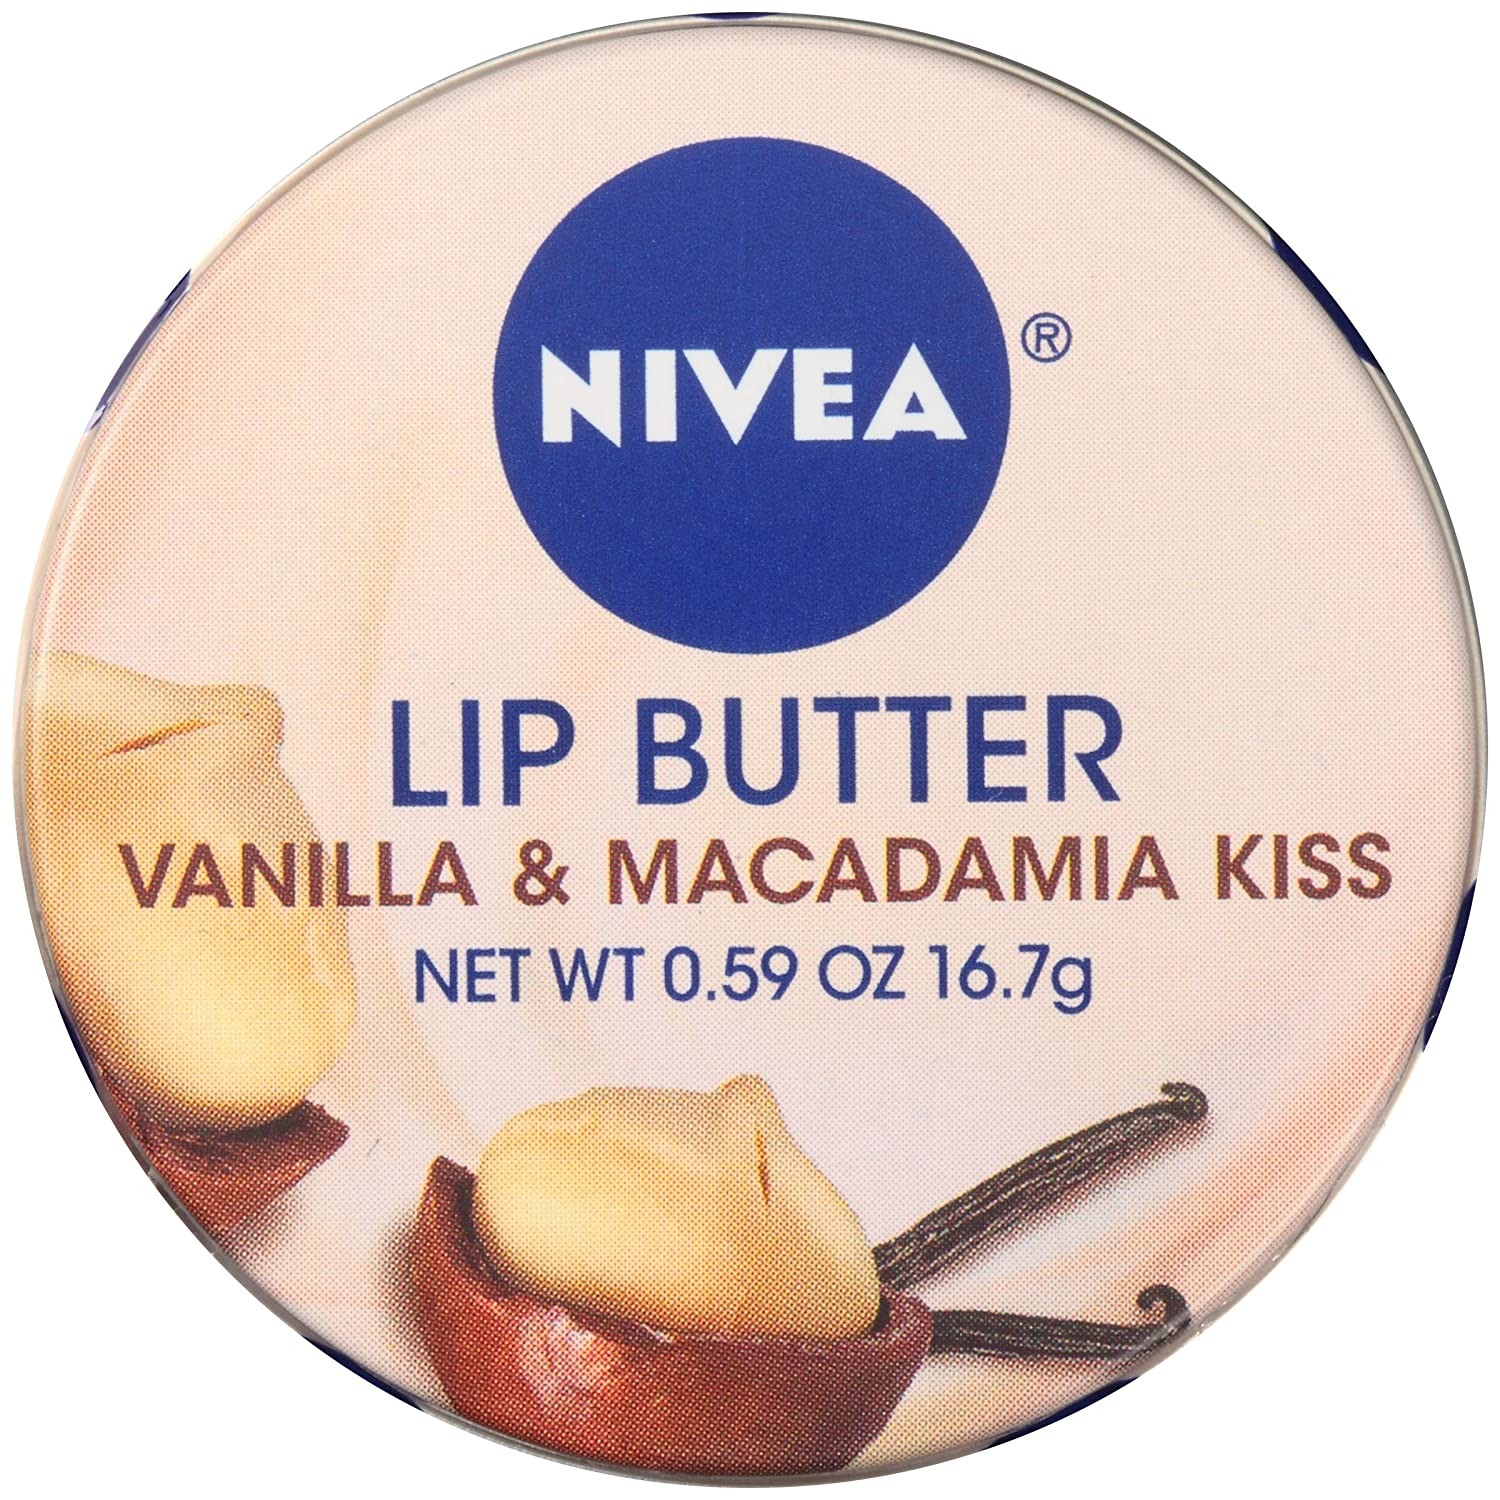 NIVEA Lip Butter Loose Tin, Raspberry Rose Kiss, 0.59 Ounce Bod-8014